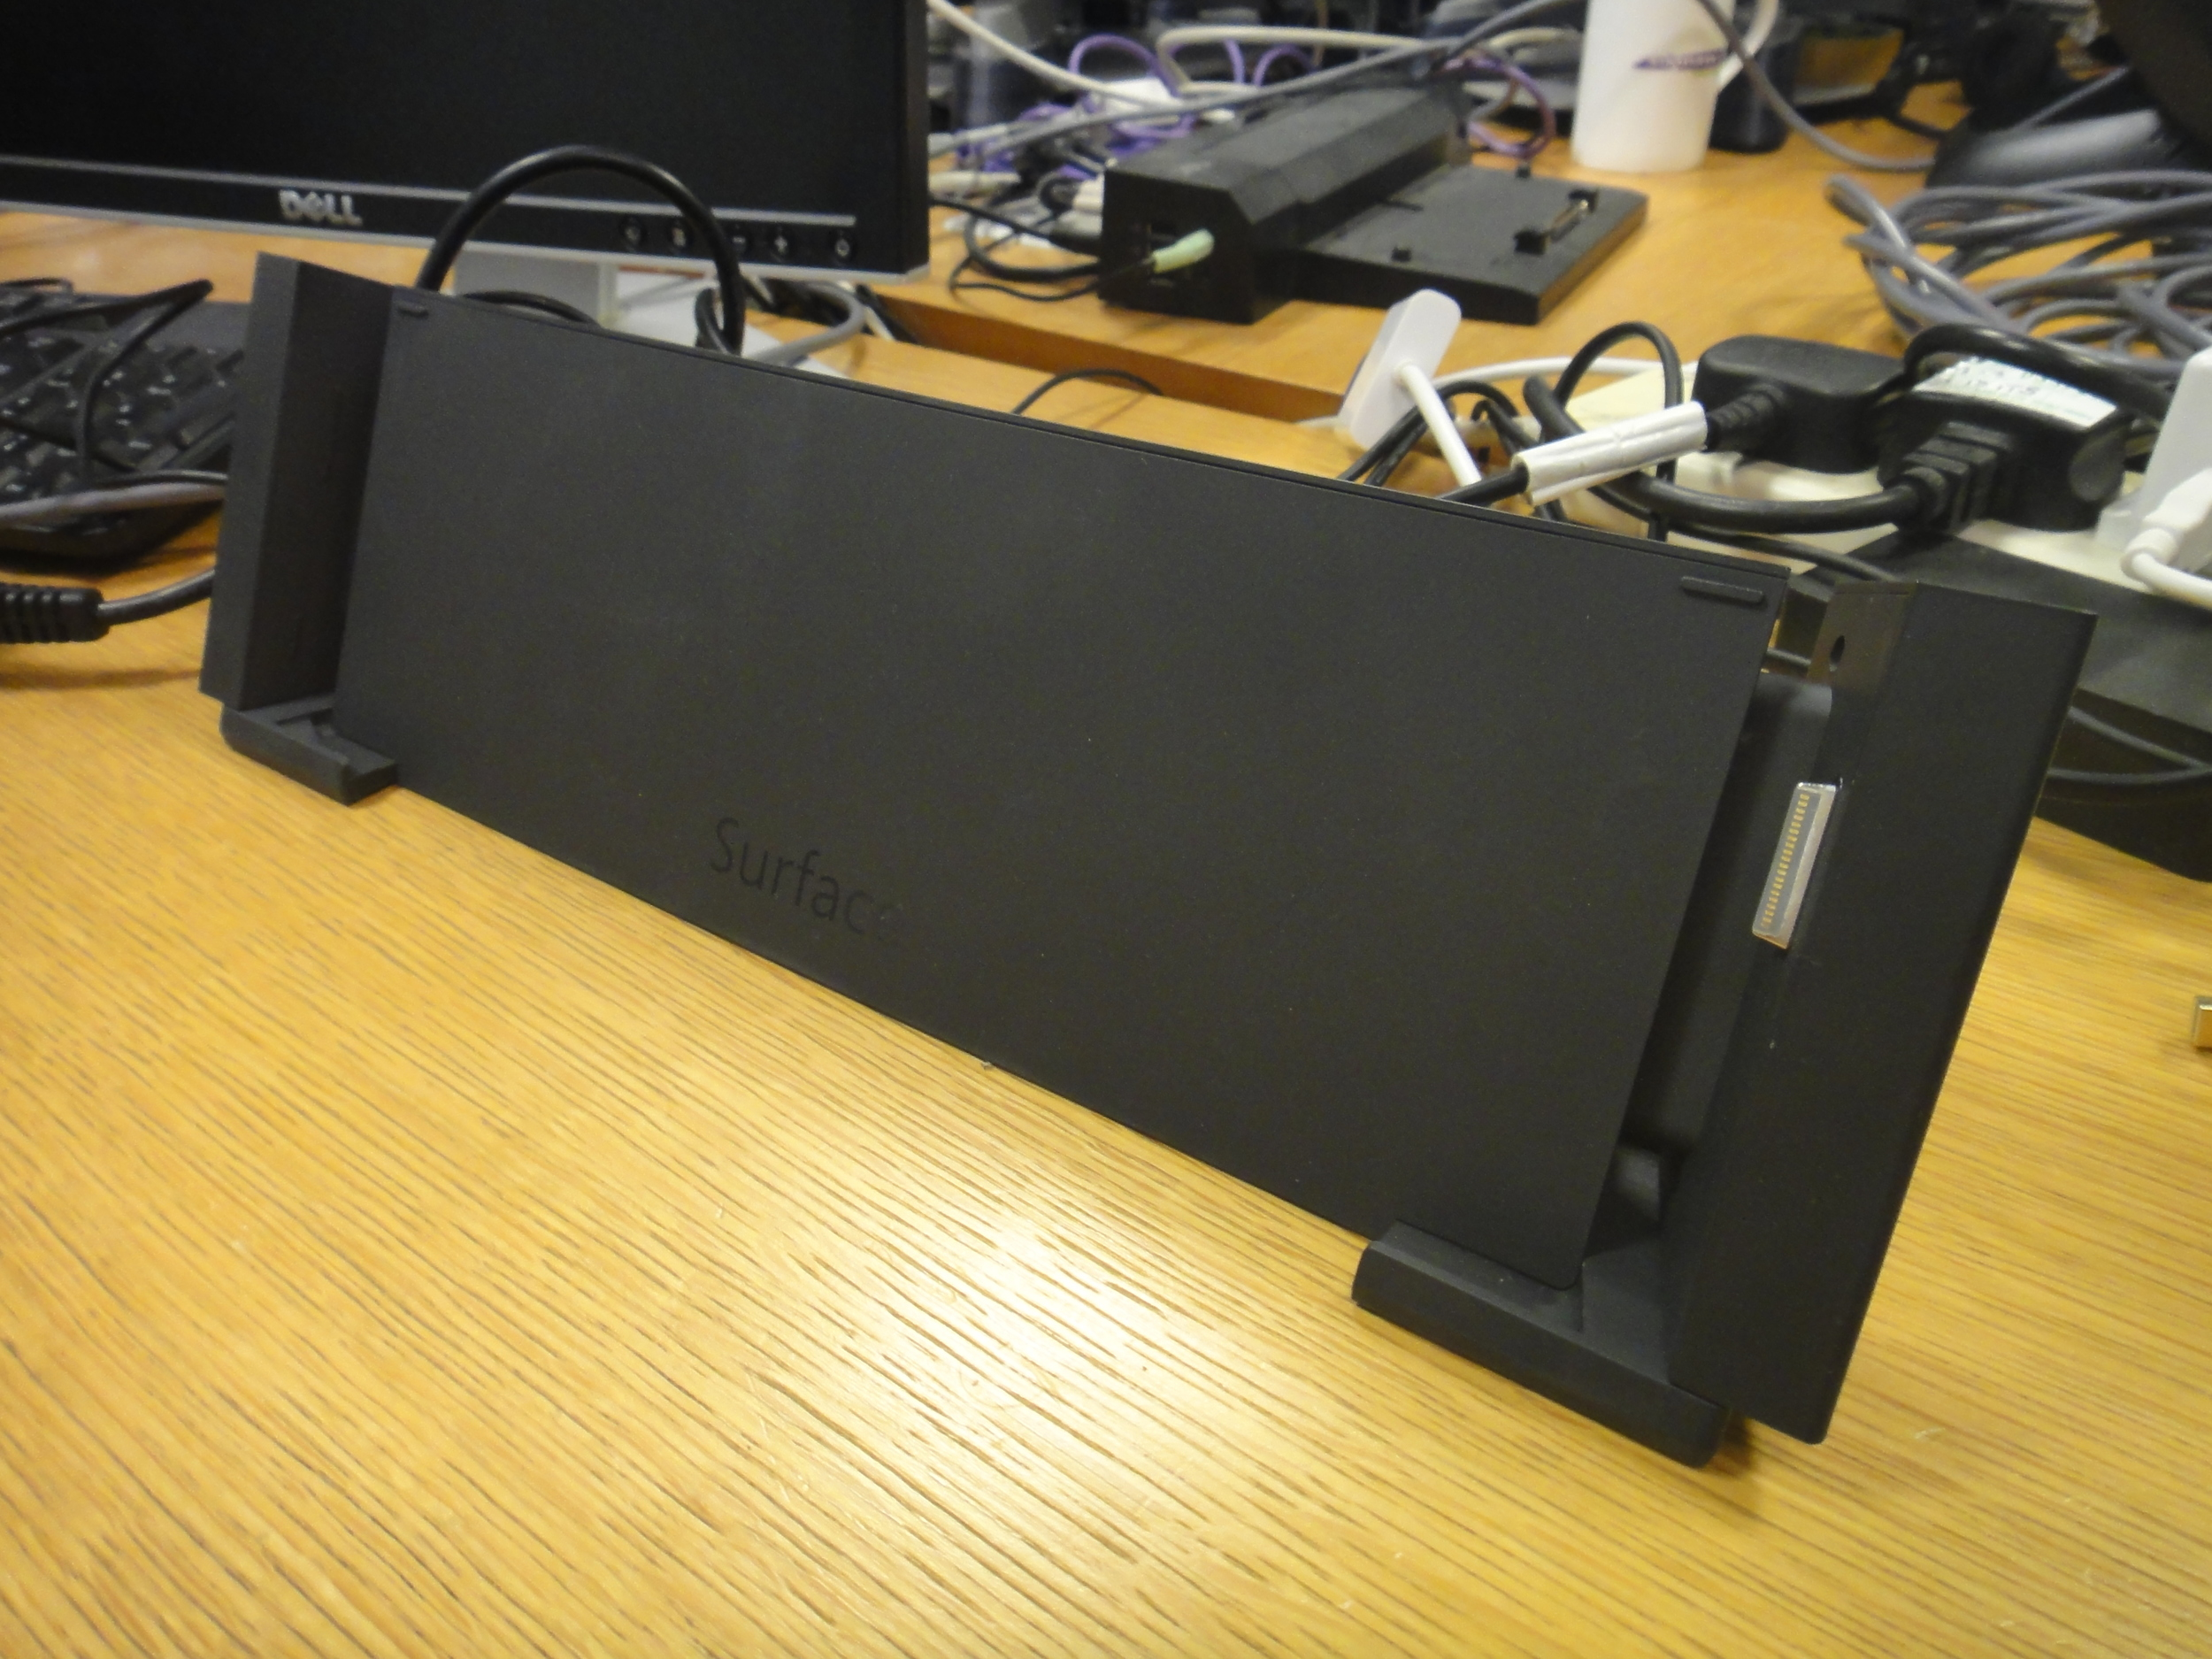 The official Surface Pro 3 docking station